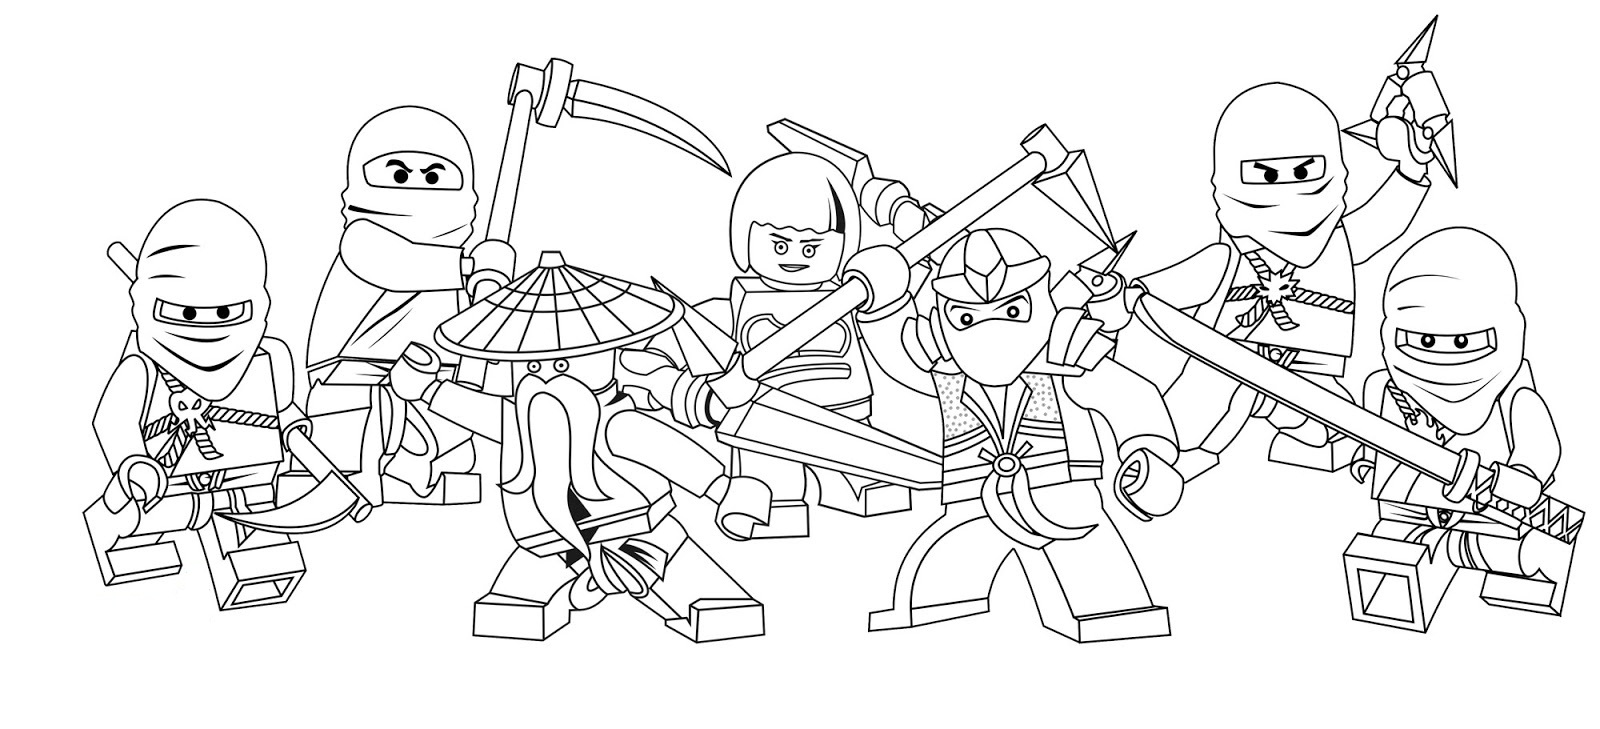 ninjago coloring pages printable - Ninjago Coloring Pages To Print